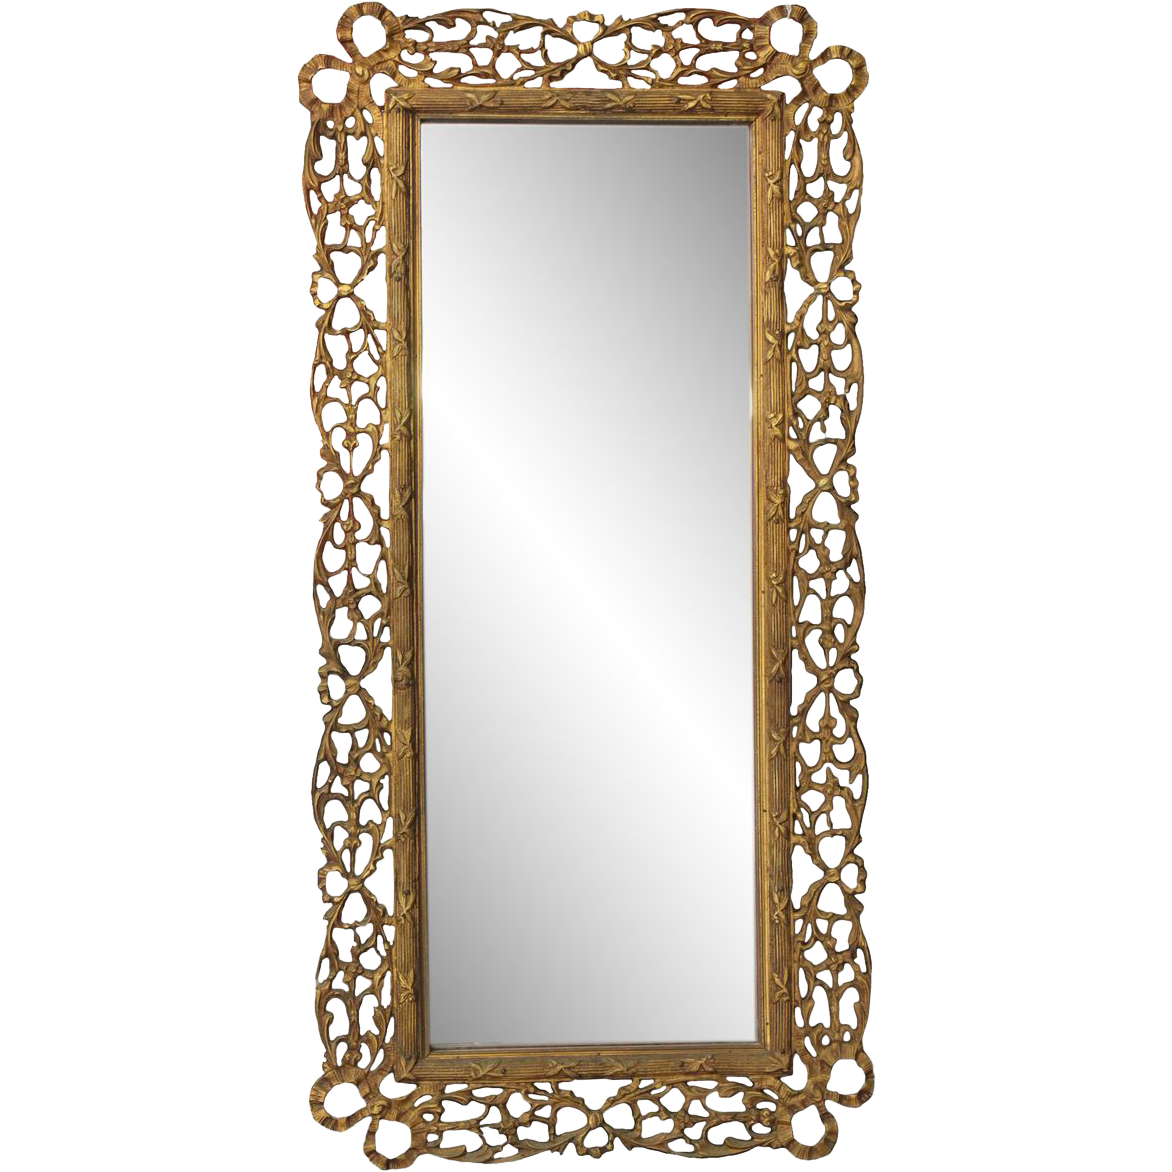 Ornate bronze mirror from France